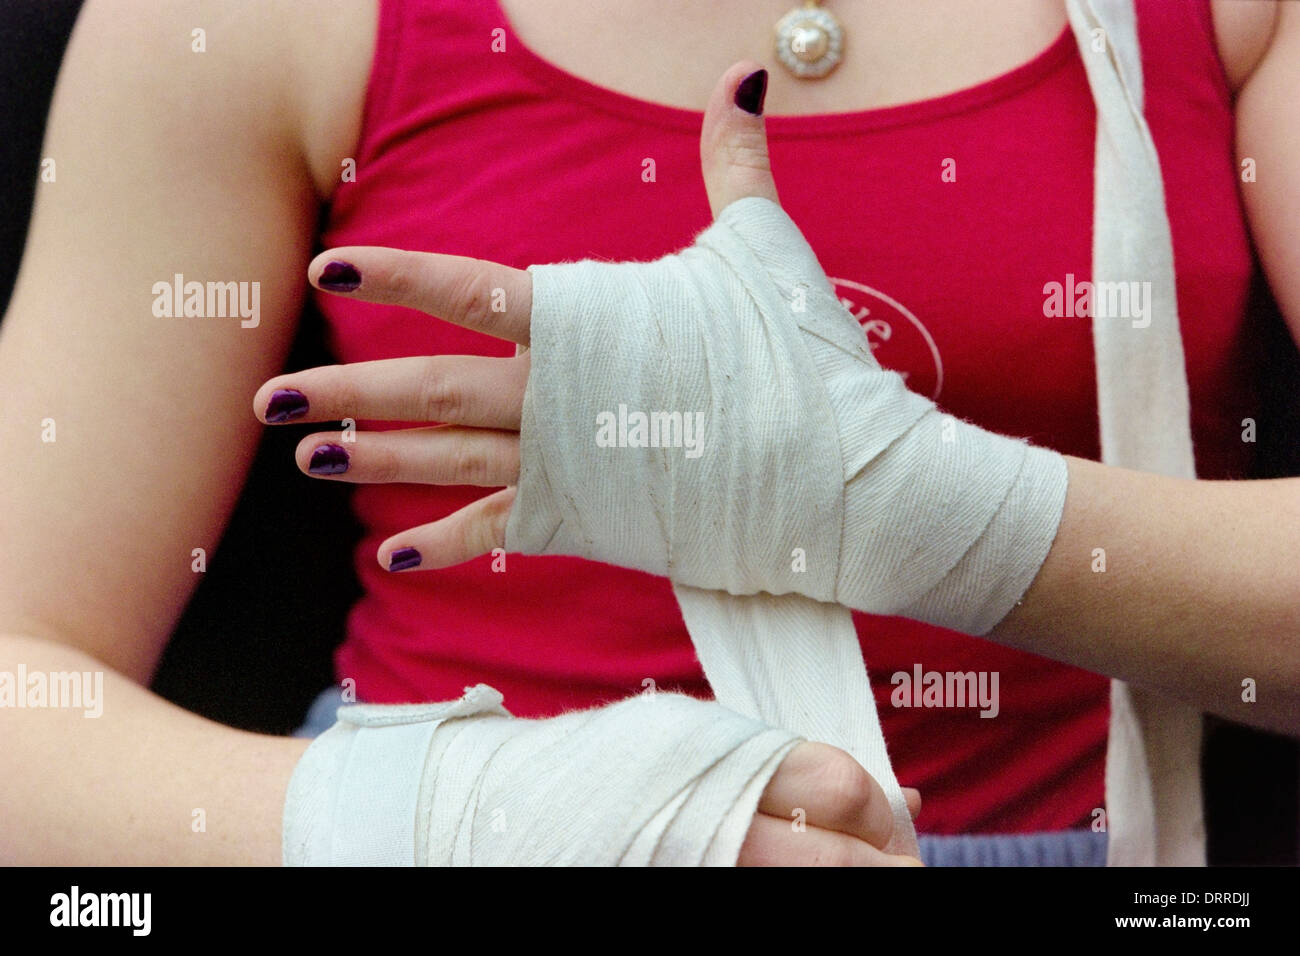 produse calde salvați foarte ieftin A female boxer wraps her hands in bandages before donning her ...